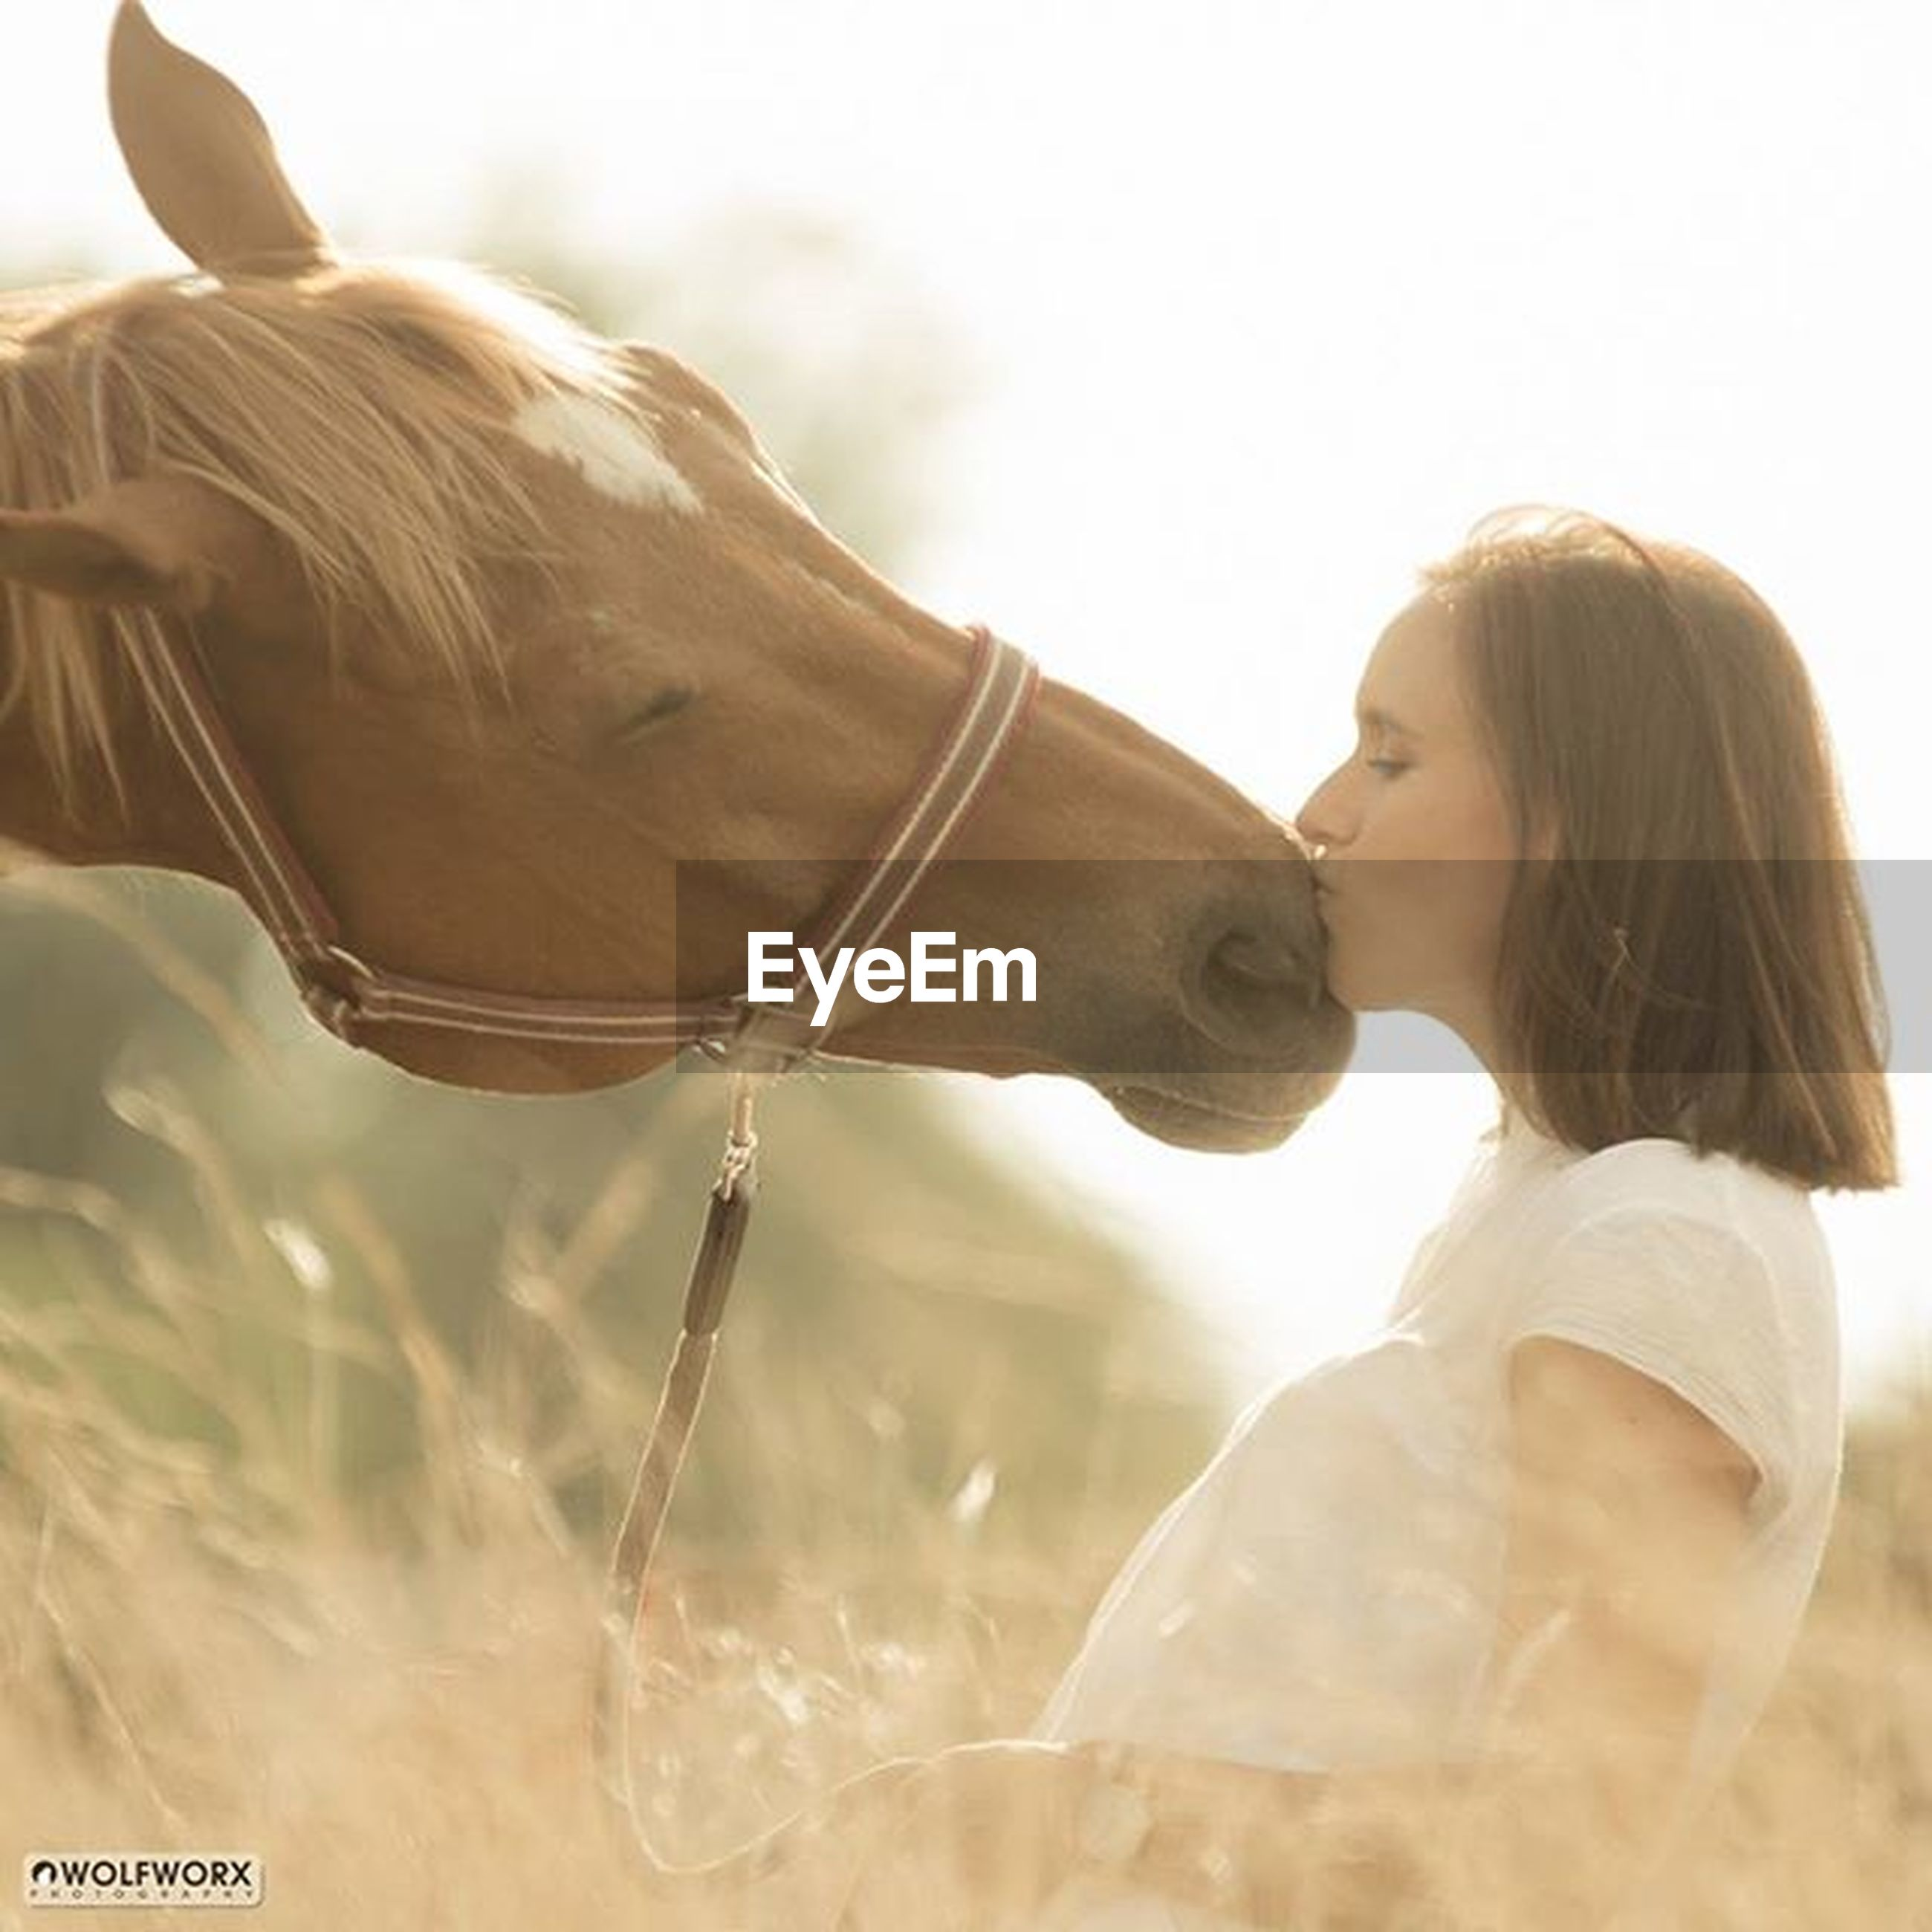 lifestyles, leisure activity, young adult, horse, side view, standing, casual clothing, young women, rear view, close-up, focus on foreground, people, sky, long hair, clear sky, day, outdoors